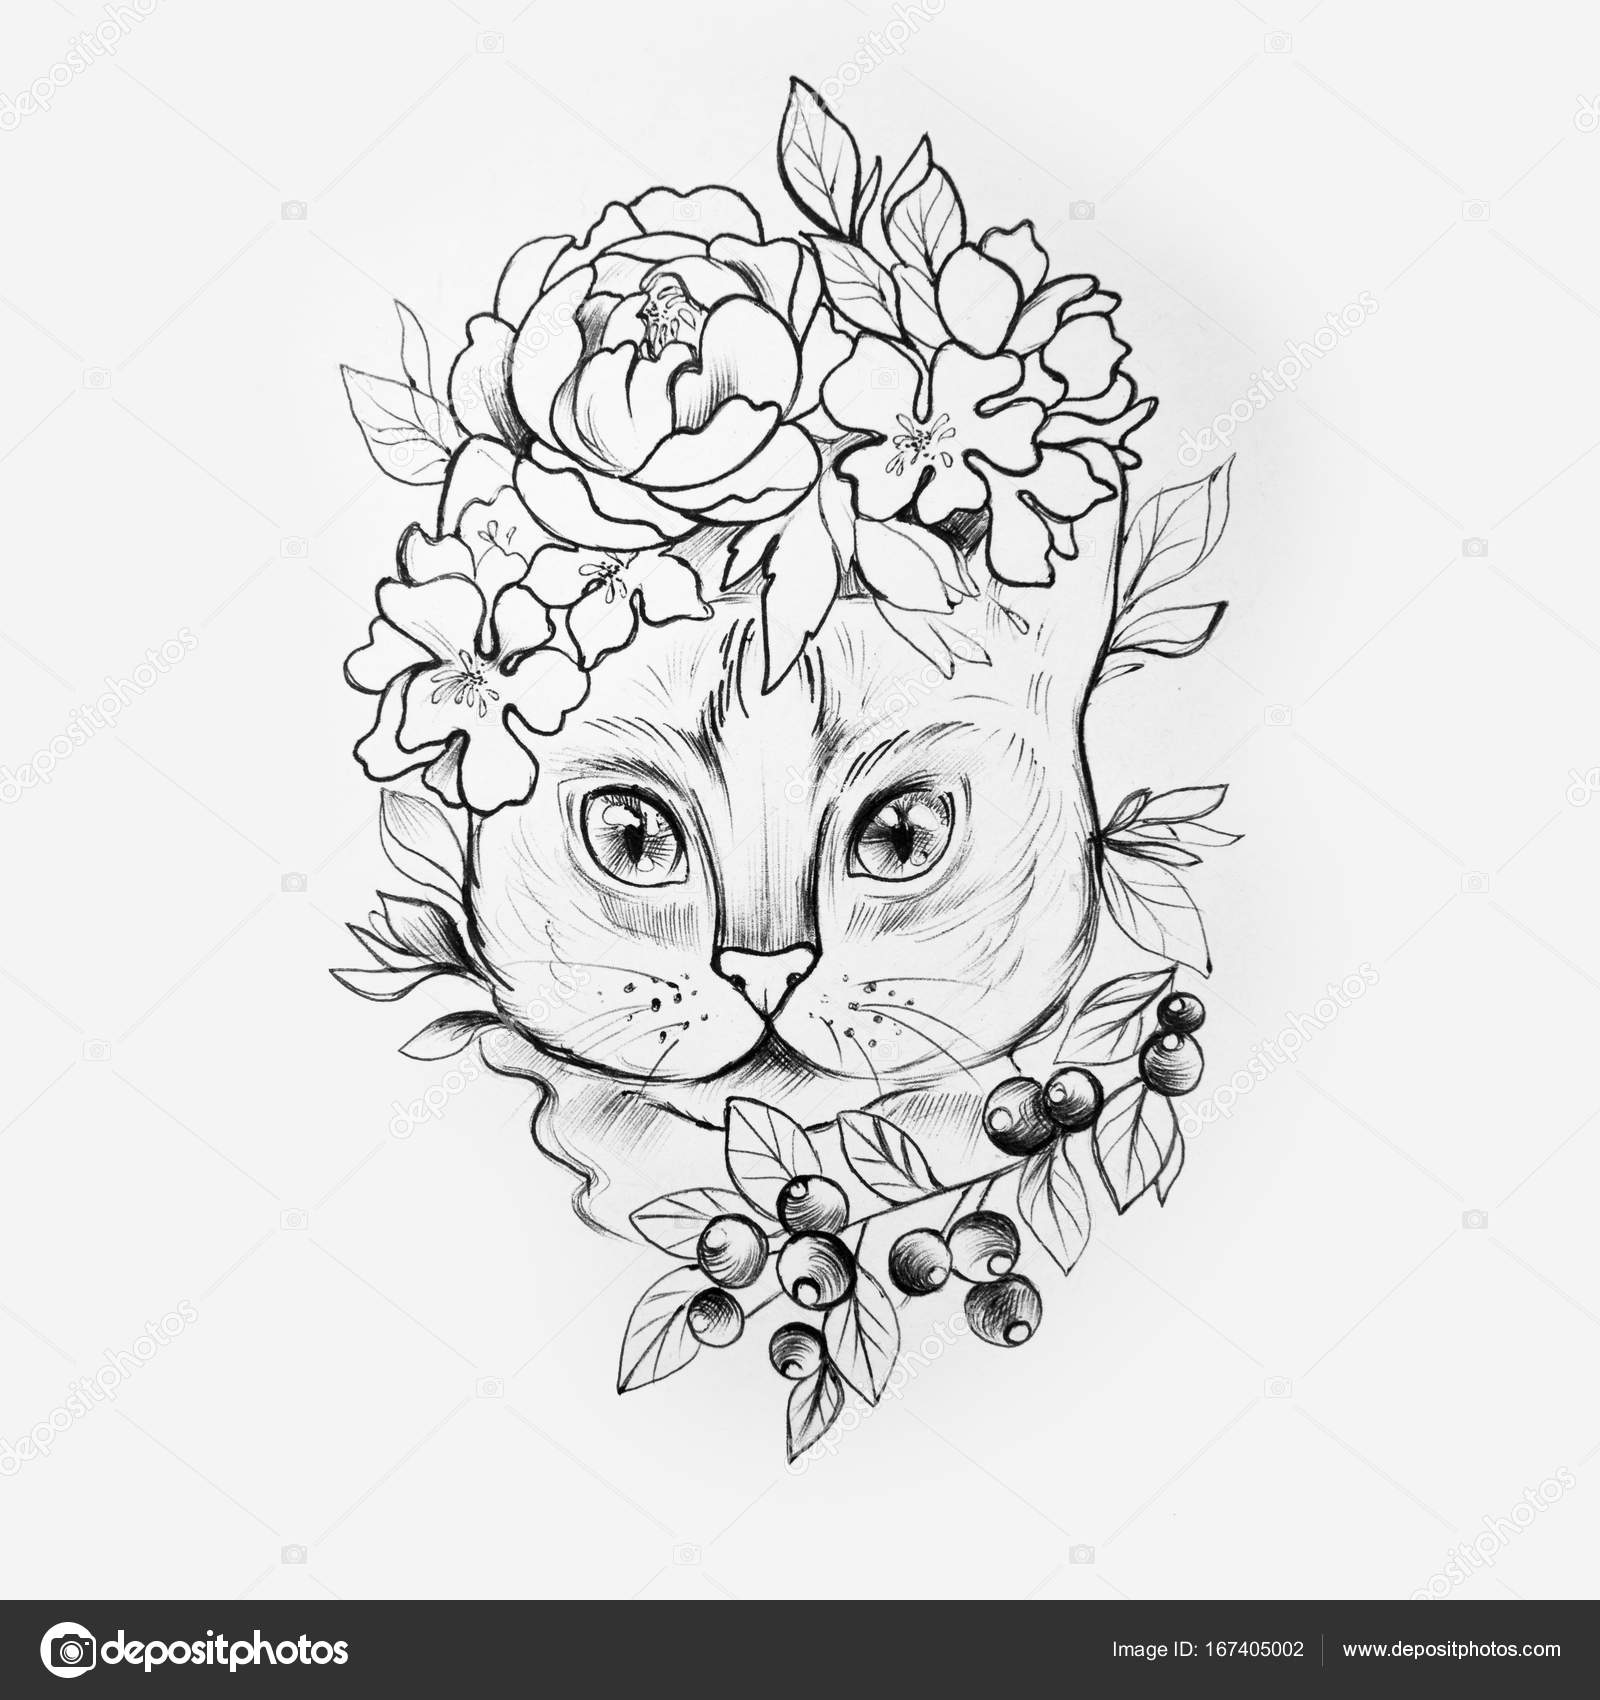 Sketch Of A Cats Head In Beautiful Flowers On A White Background